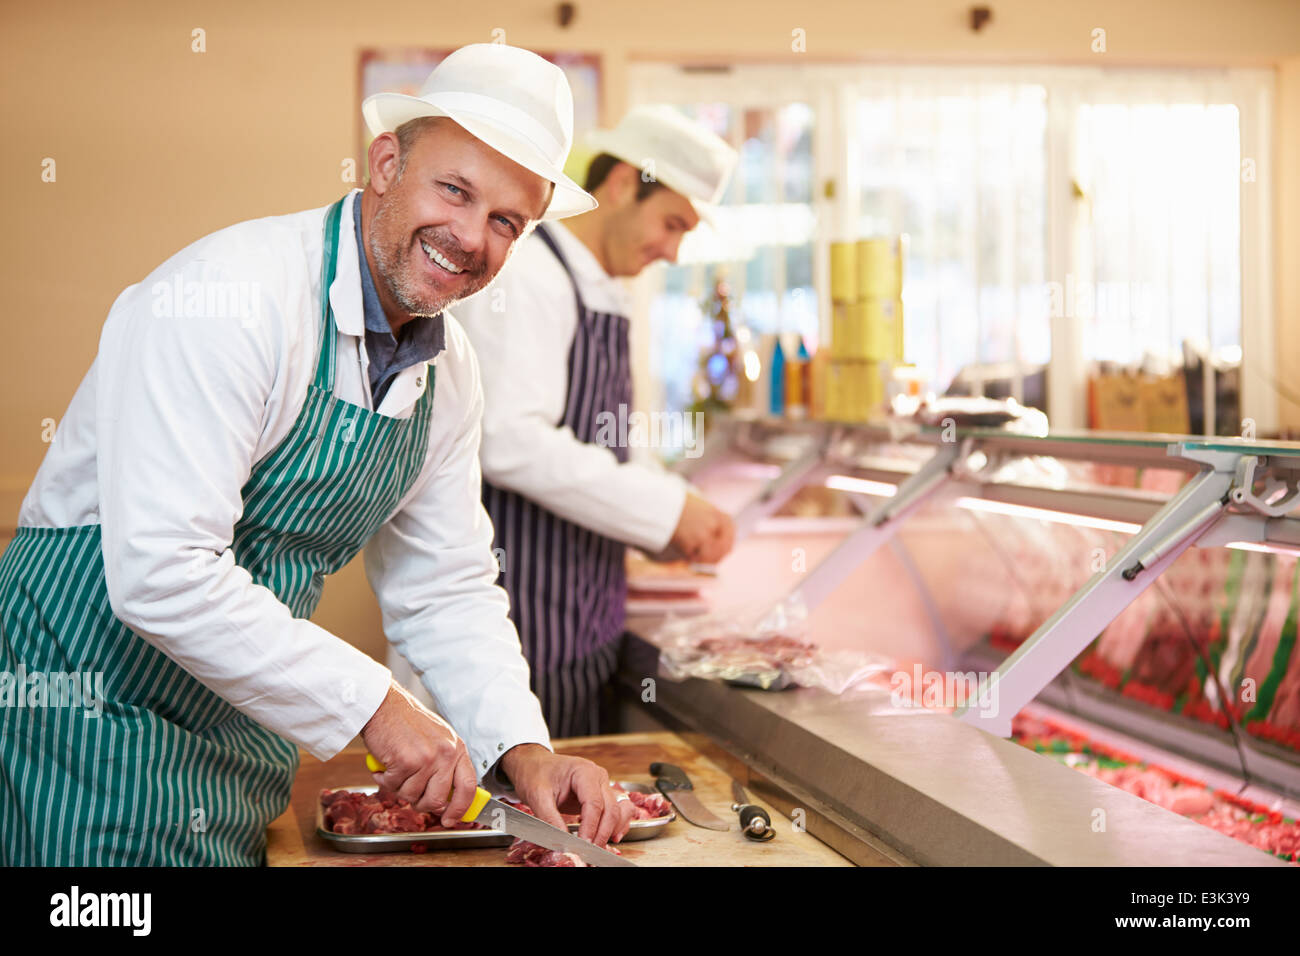 Two Butchers Preparing Meat In Shop - Stock Image